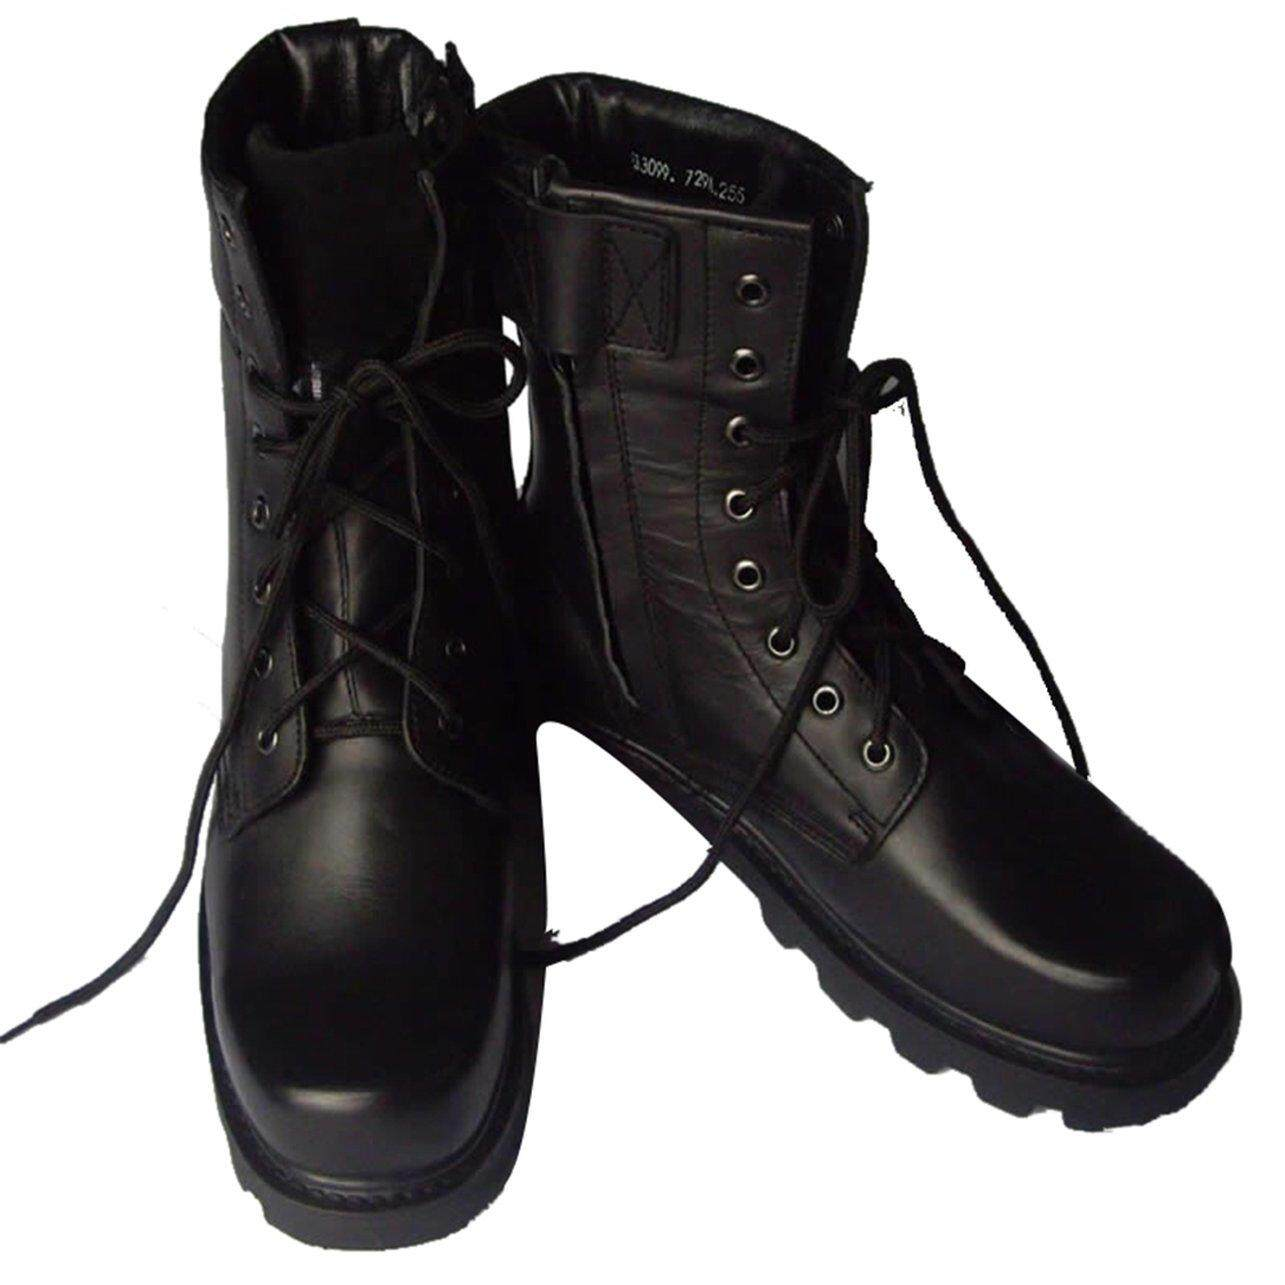 GOOD SHOP DA-089 Rubber Firefighter Rescue Boots Protective Boots Anti-Puncture